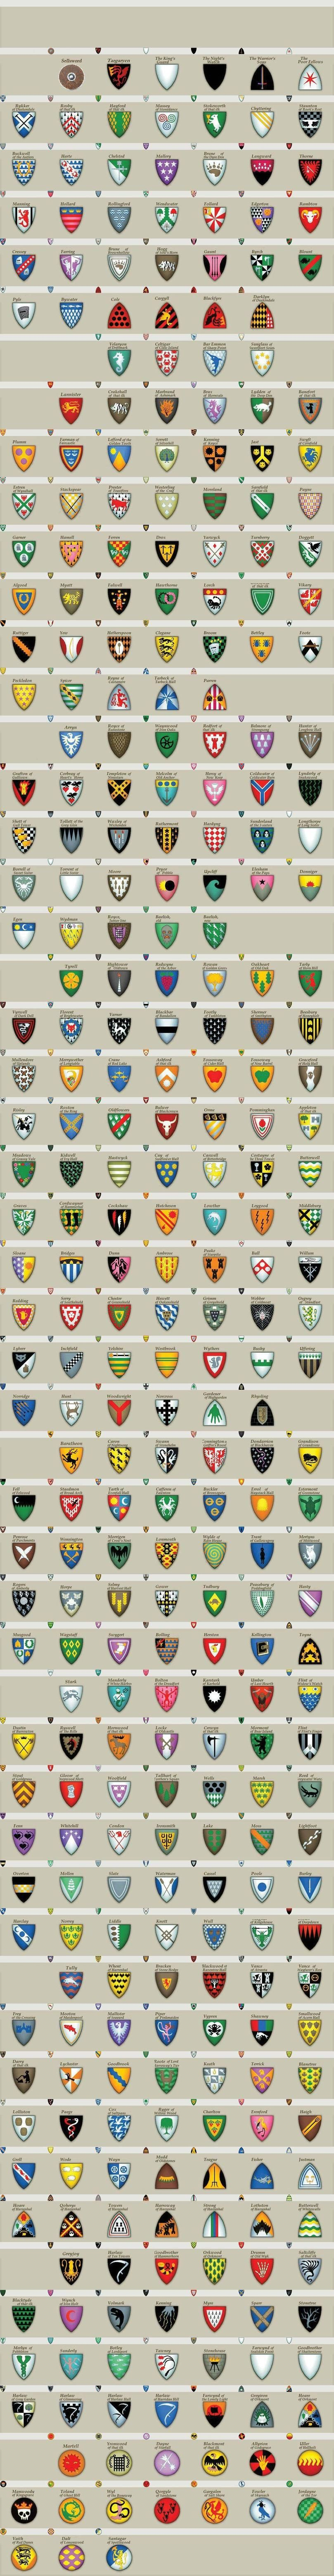 The Sigils Banners From The World Of The Game Of Thrones With